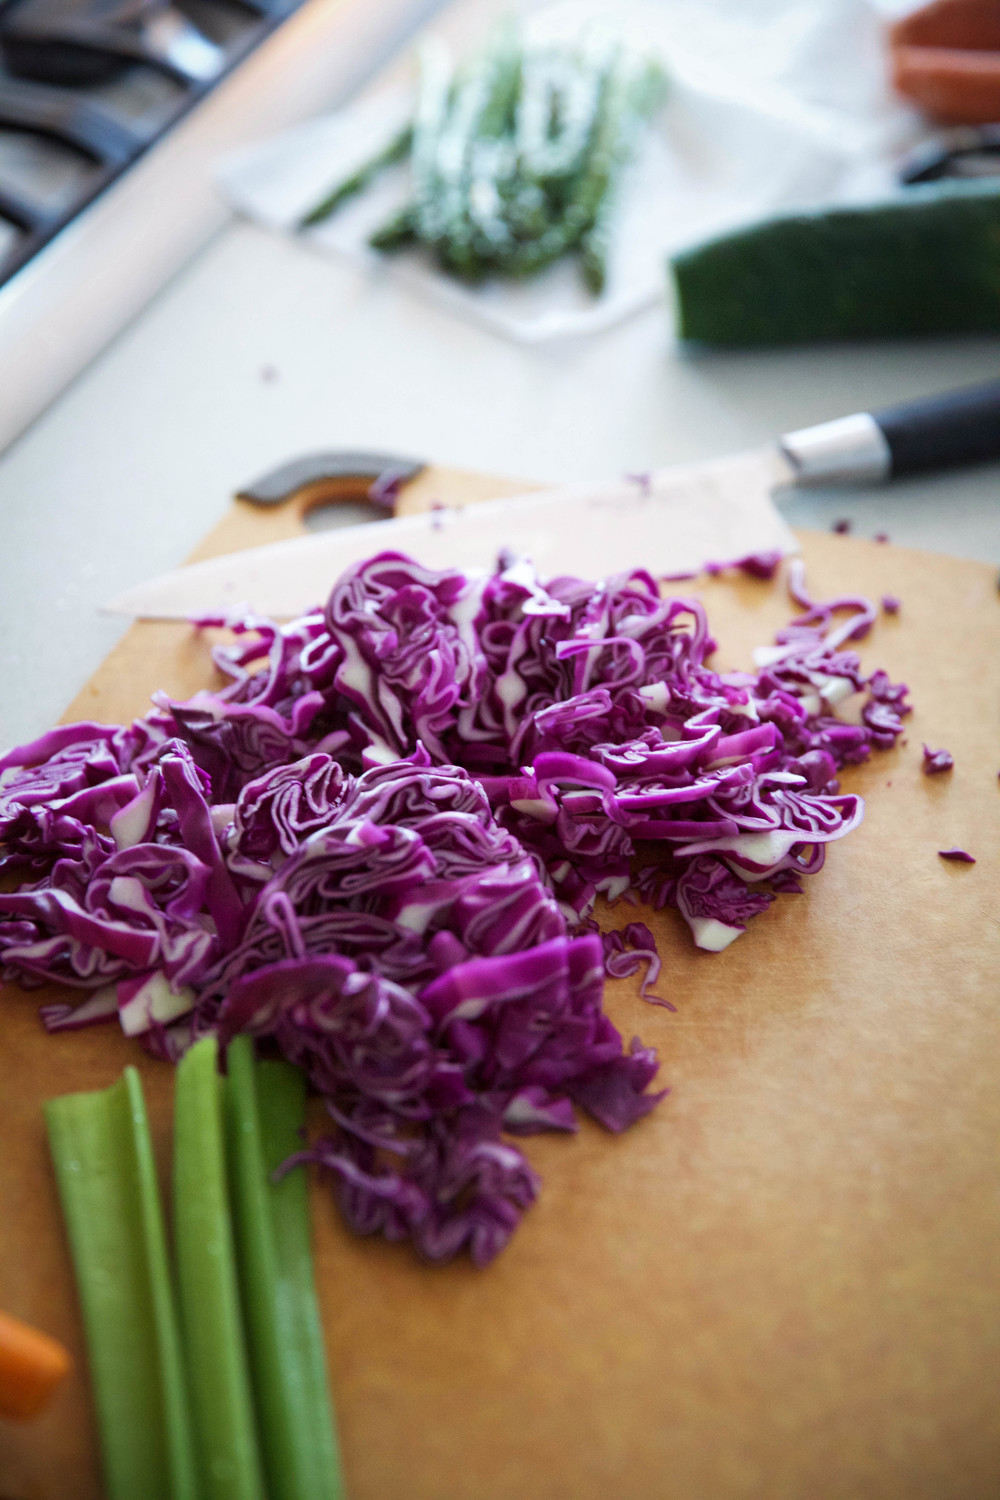 LaurenSchwaiger-Life-Style-Blog-Purple-Cabbage.jpg